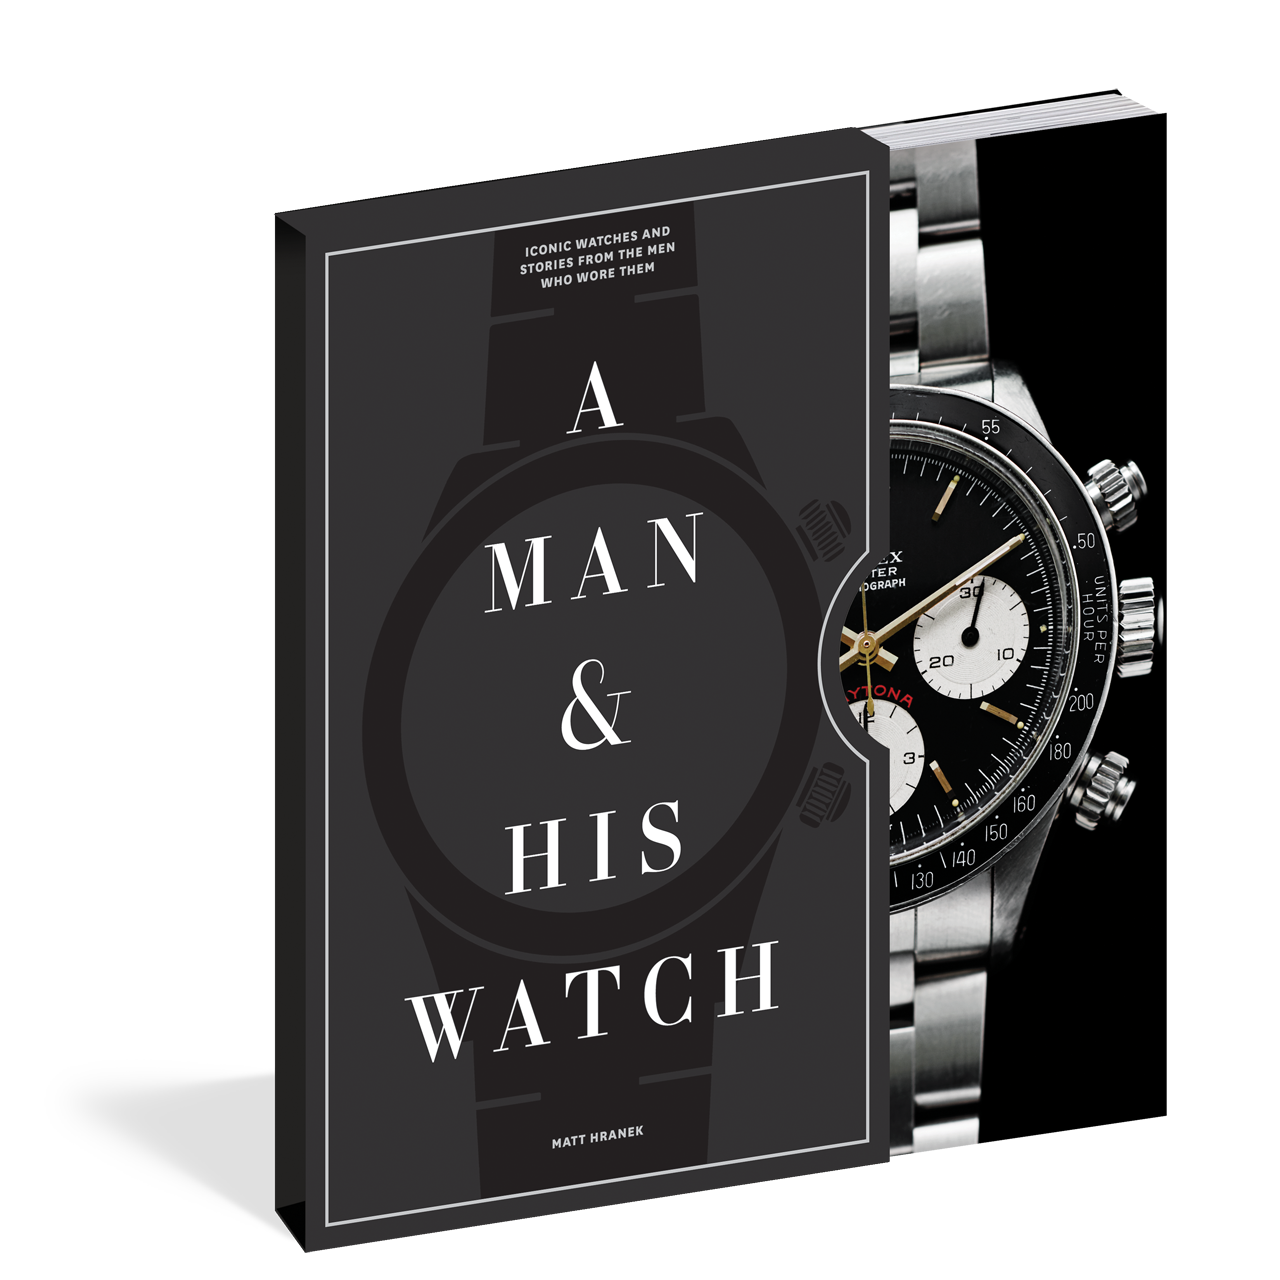 A Man and His Watch by Matt Hranek